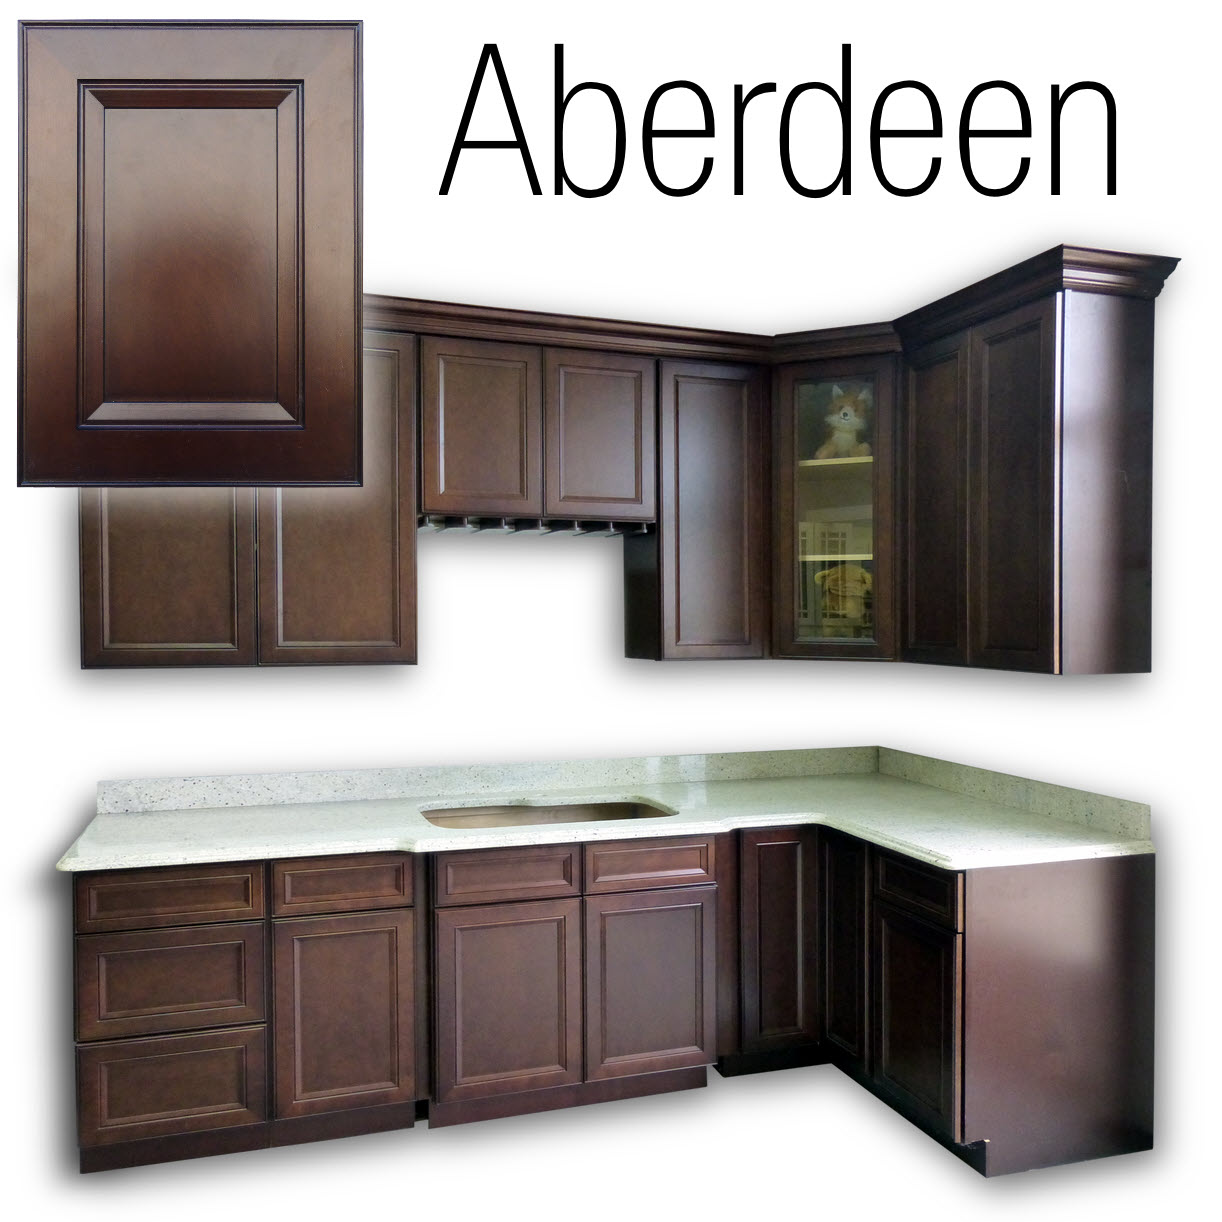 Excellent Aberdeen Cabinets Home Surplus Complete Home Design Collection Lindsey Bellcom